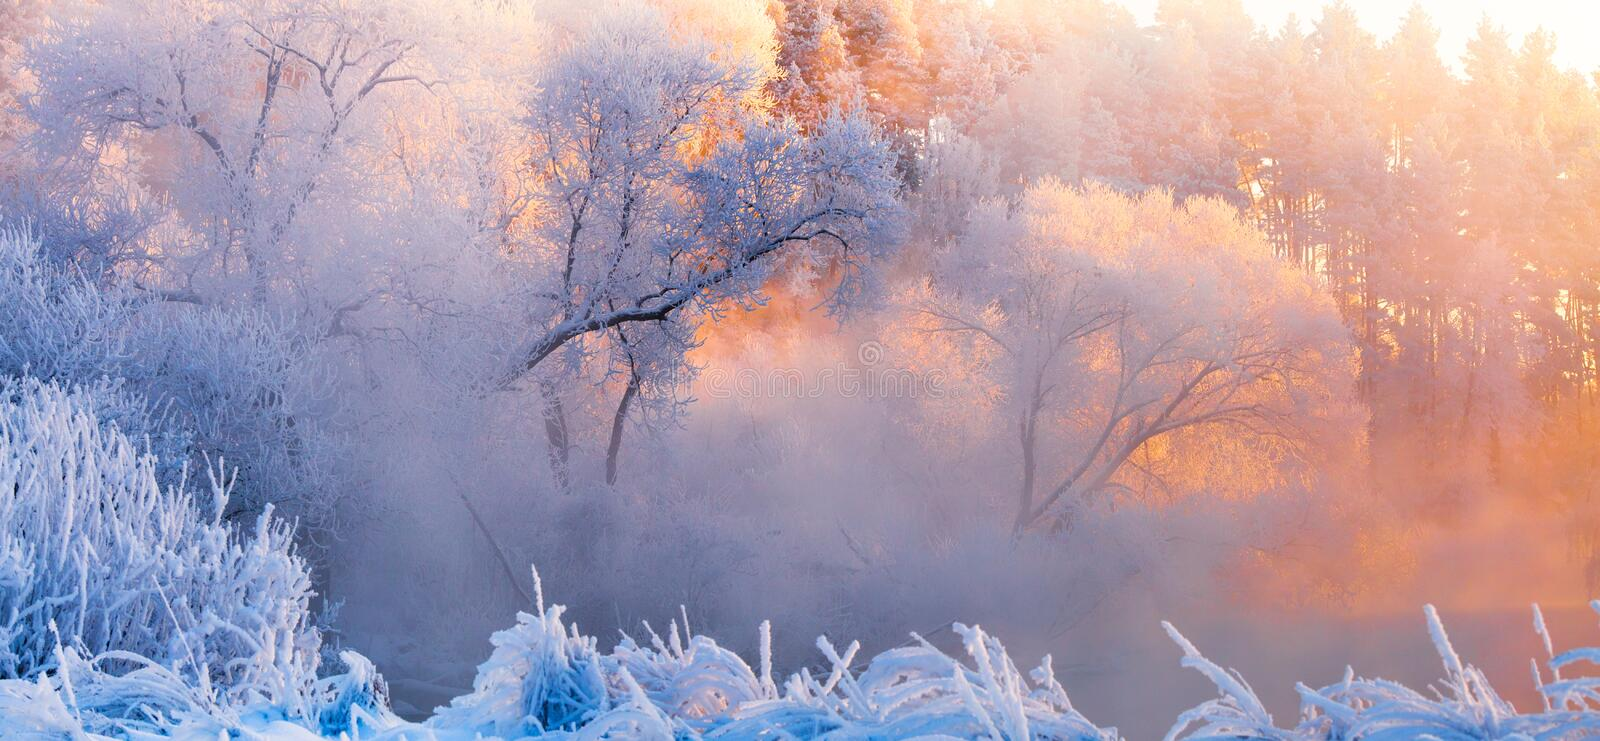 Frosty Christmas morning. Winter landscape with frosty trees lit by the morning sun. Winter panorama in orange blue colors. Winter. Wonderland royalty free stock photos